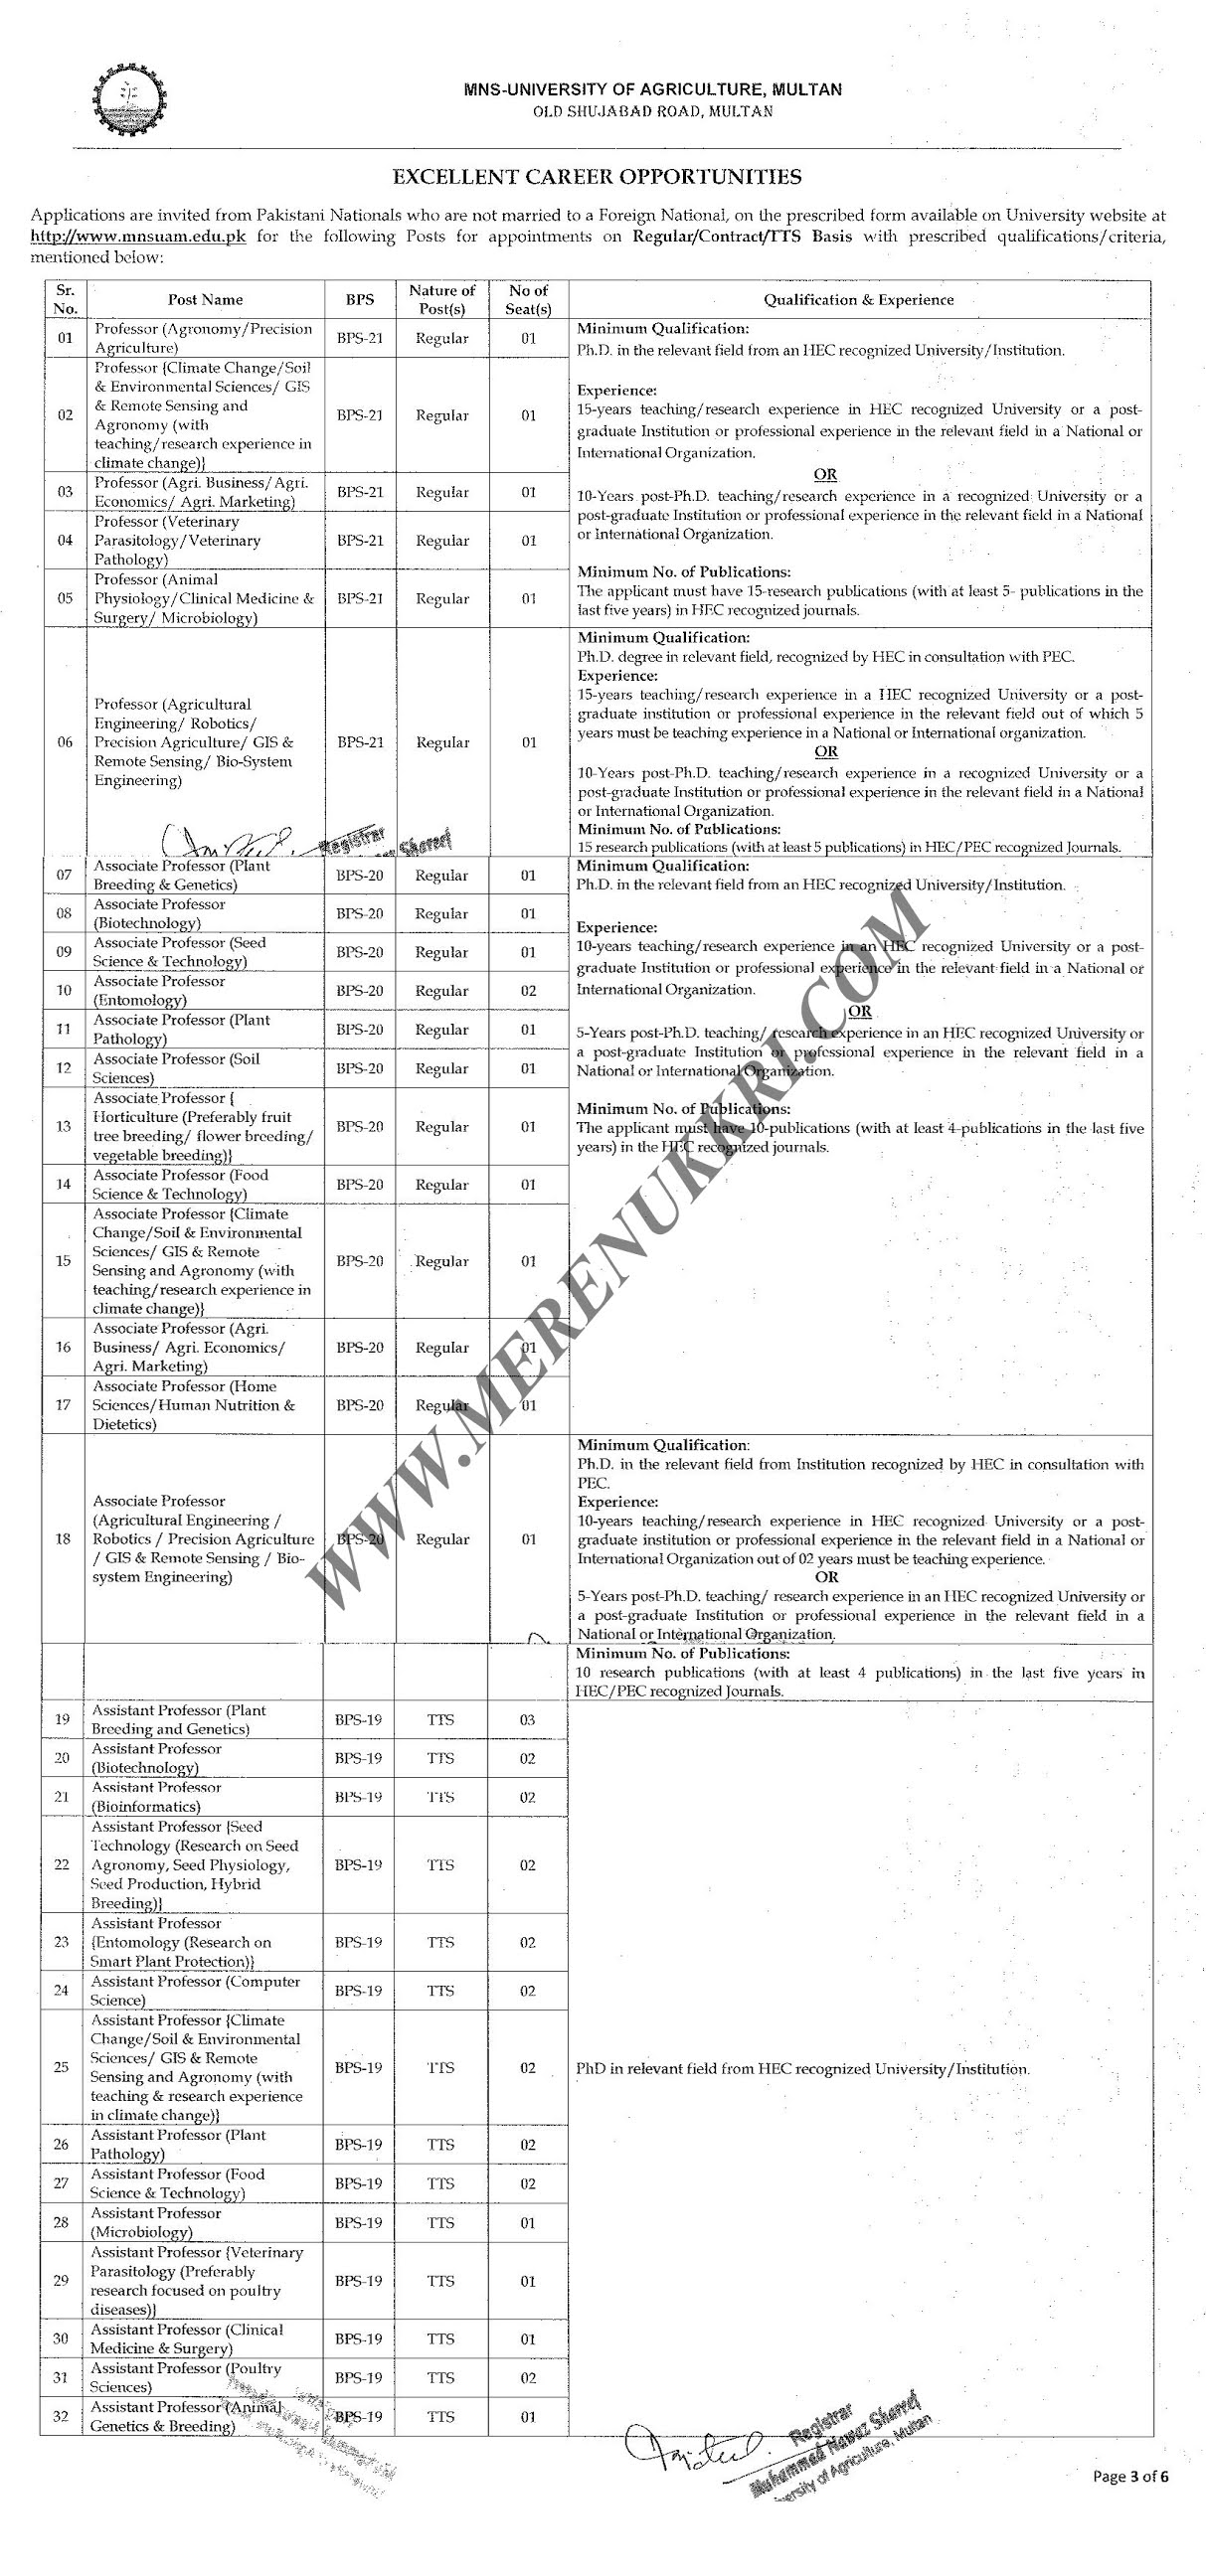 Latest Jobs in MNSUAM | Muhammad Nawaz Shareef University of Agriculture, Multan | Download Application Form